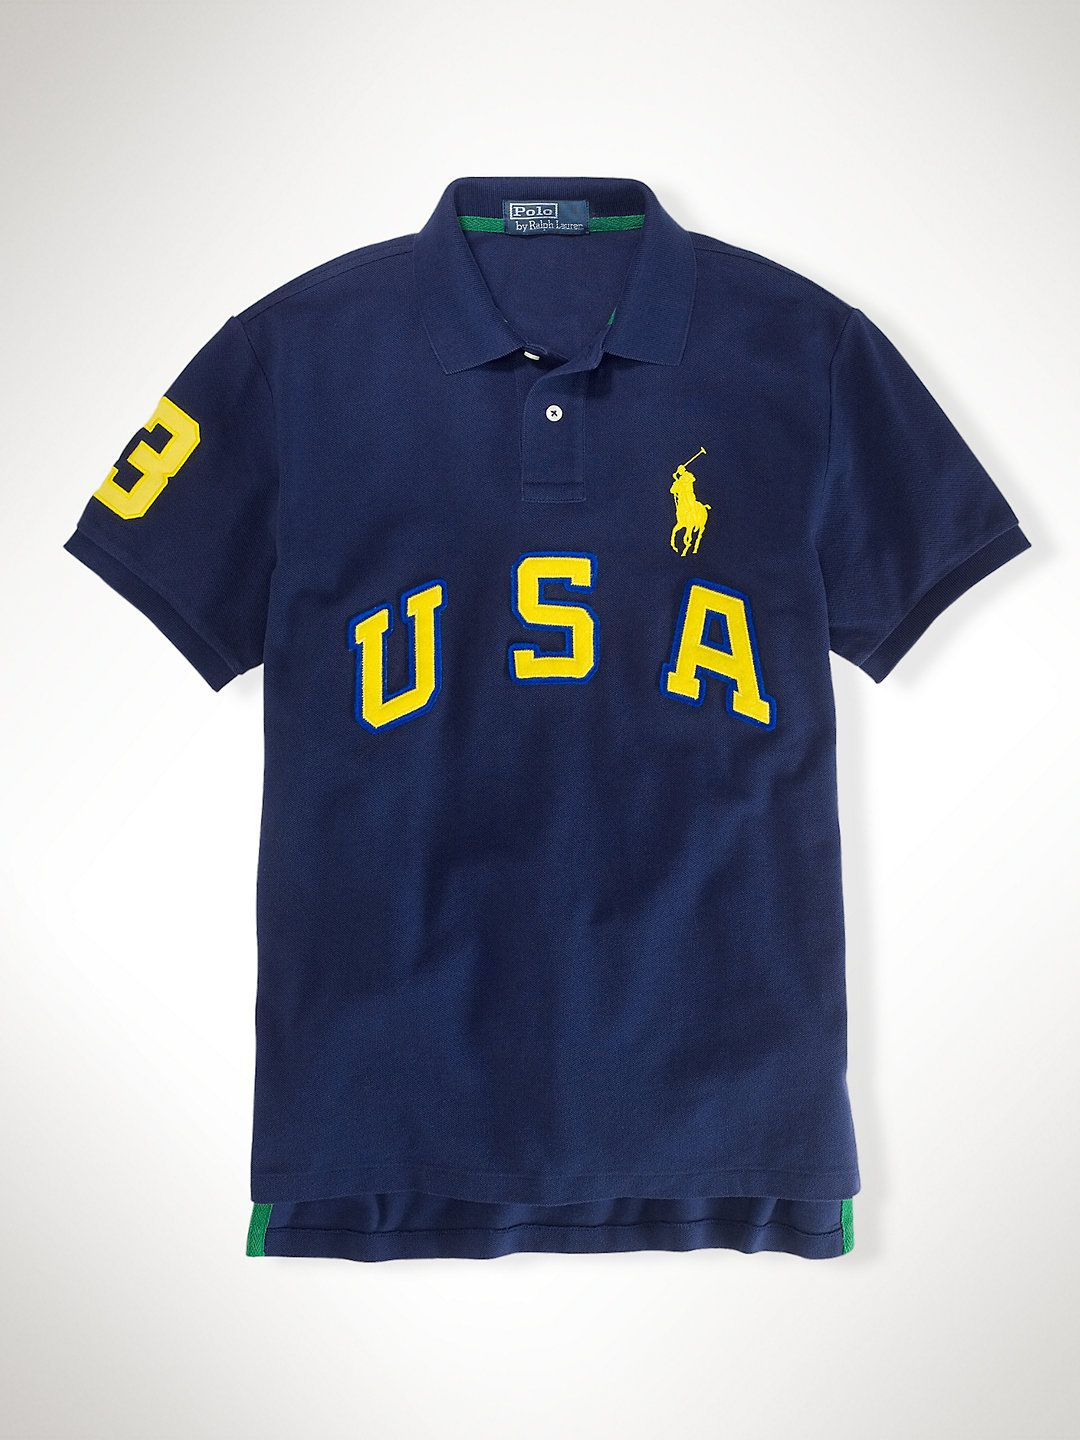 569818dcd3cd03 USA Big Pony Polo | STYLE in 2019 | Polo ralph lauren, Polo, Men